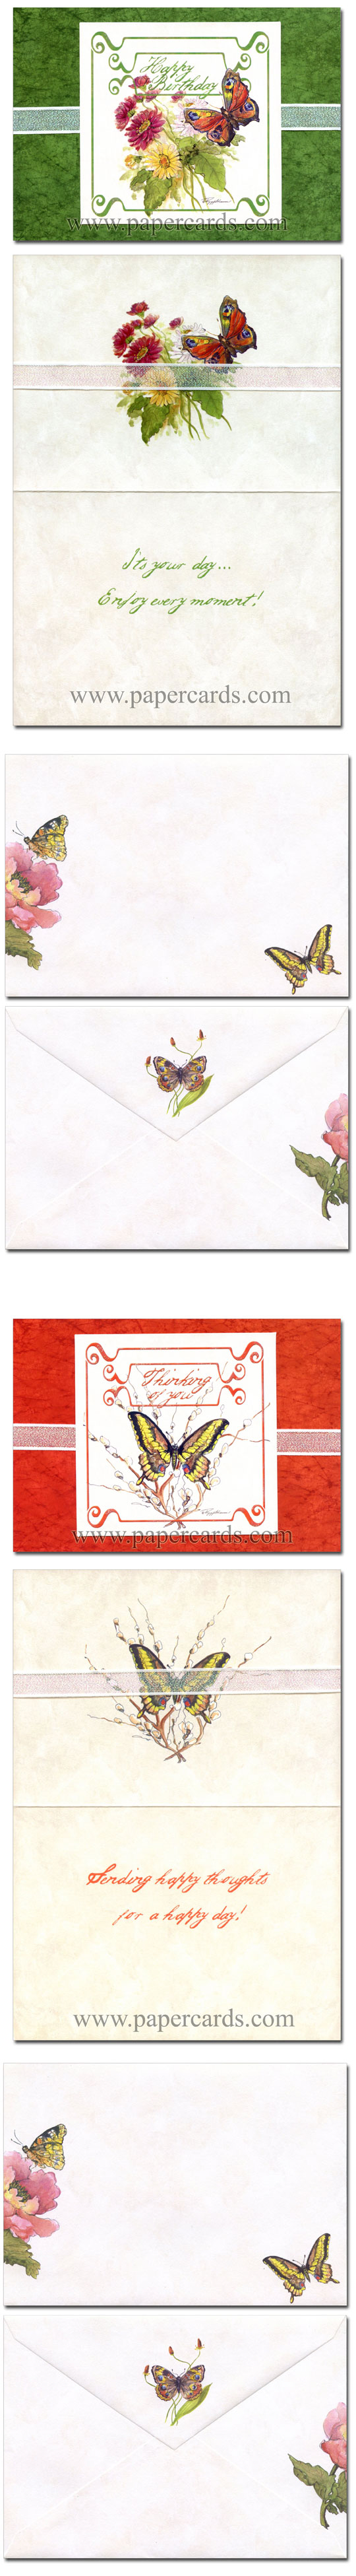 Nature's Gifts (12 cards & 12 envelopes) Assorted Peggy Abrams All Occasion Cards